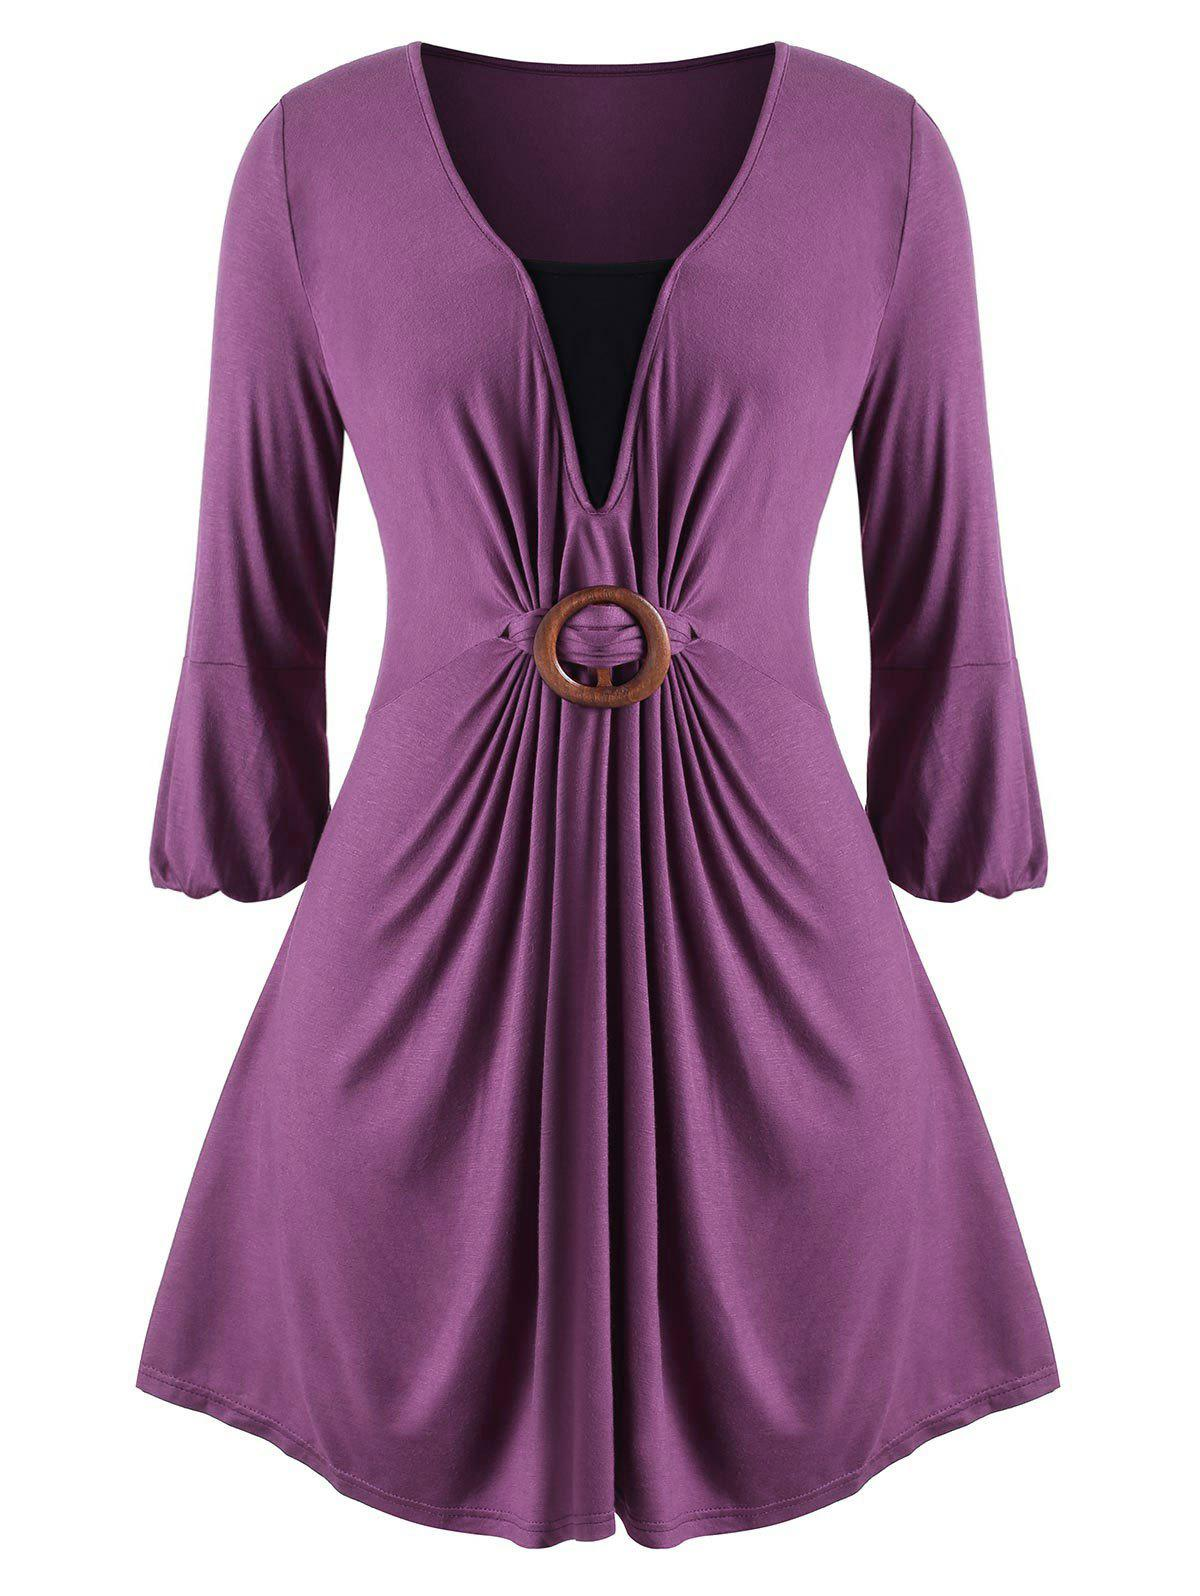 Shops Contrast O Ring Skirted Longline Plus Size Top